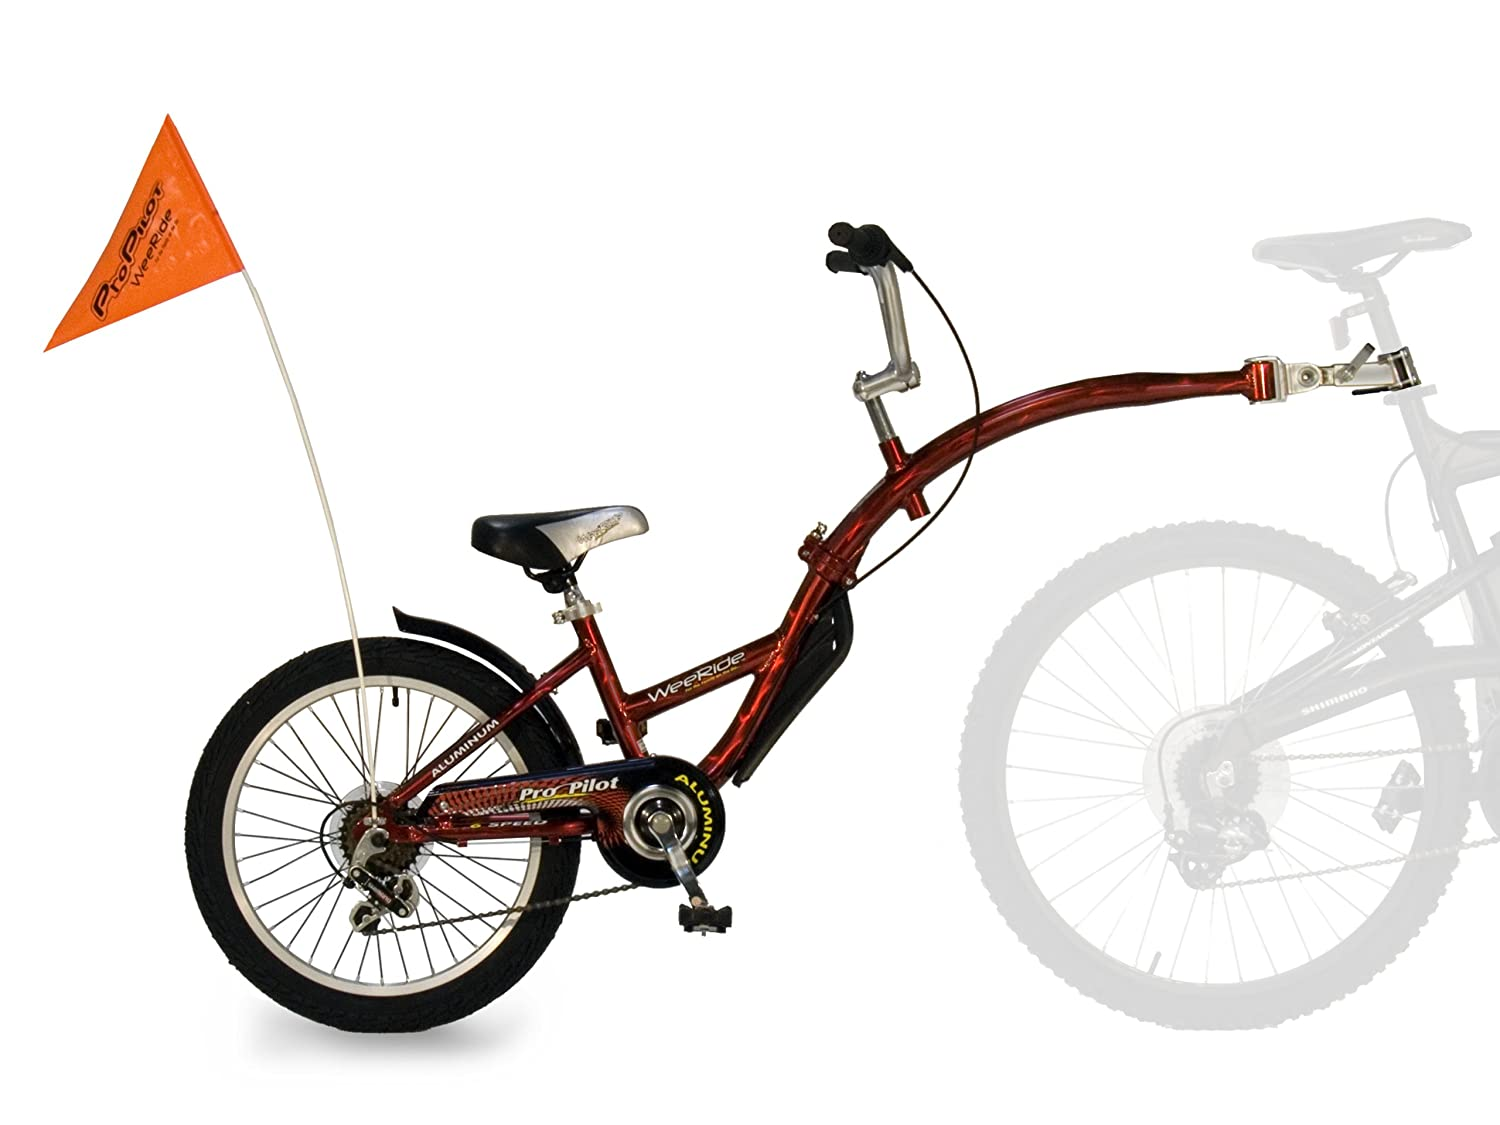 3cb35aeb26b WeeRide Pro Pilot Aluminium Tagalong 6 Speed Child Tag along bike - Red,  20-inch: Amazon.co.uk: Sports & Outdoors